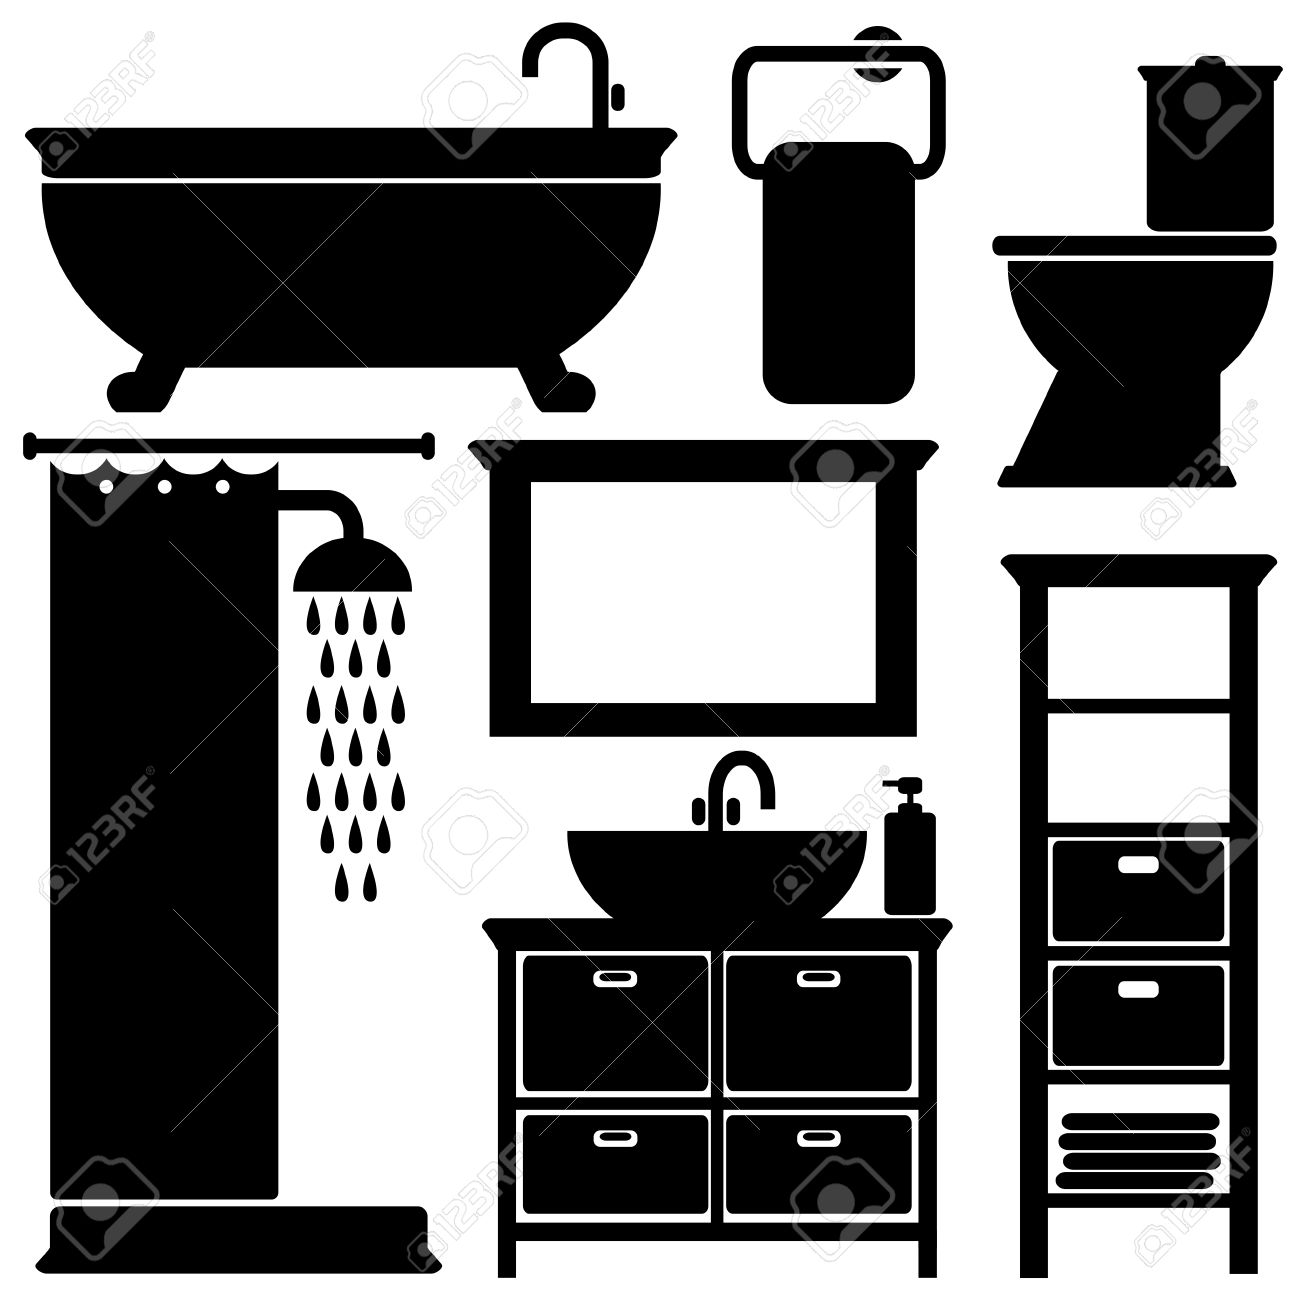 Bathroom clipart black and white - Bathroom Toilet Black Icons Set Silhouettes On White Background Vector Illustration Stock Vector